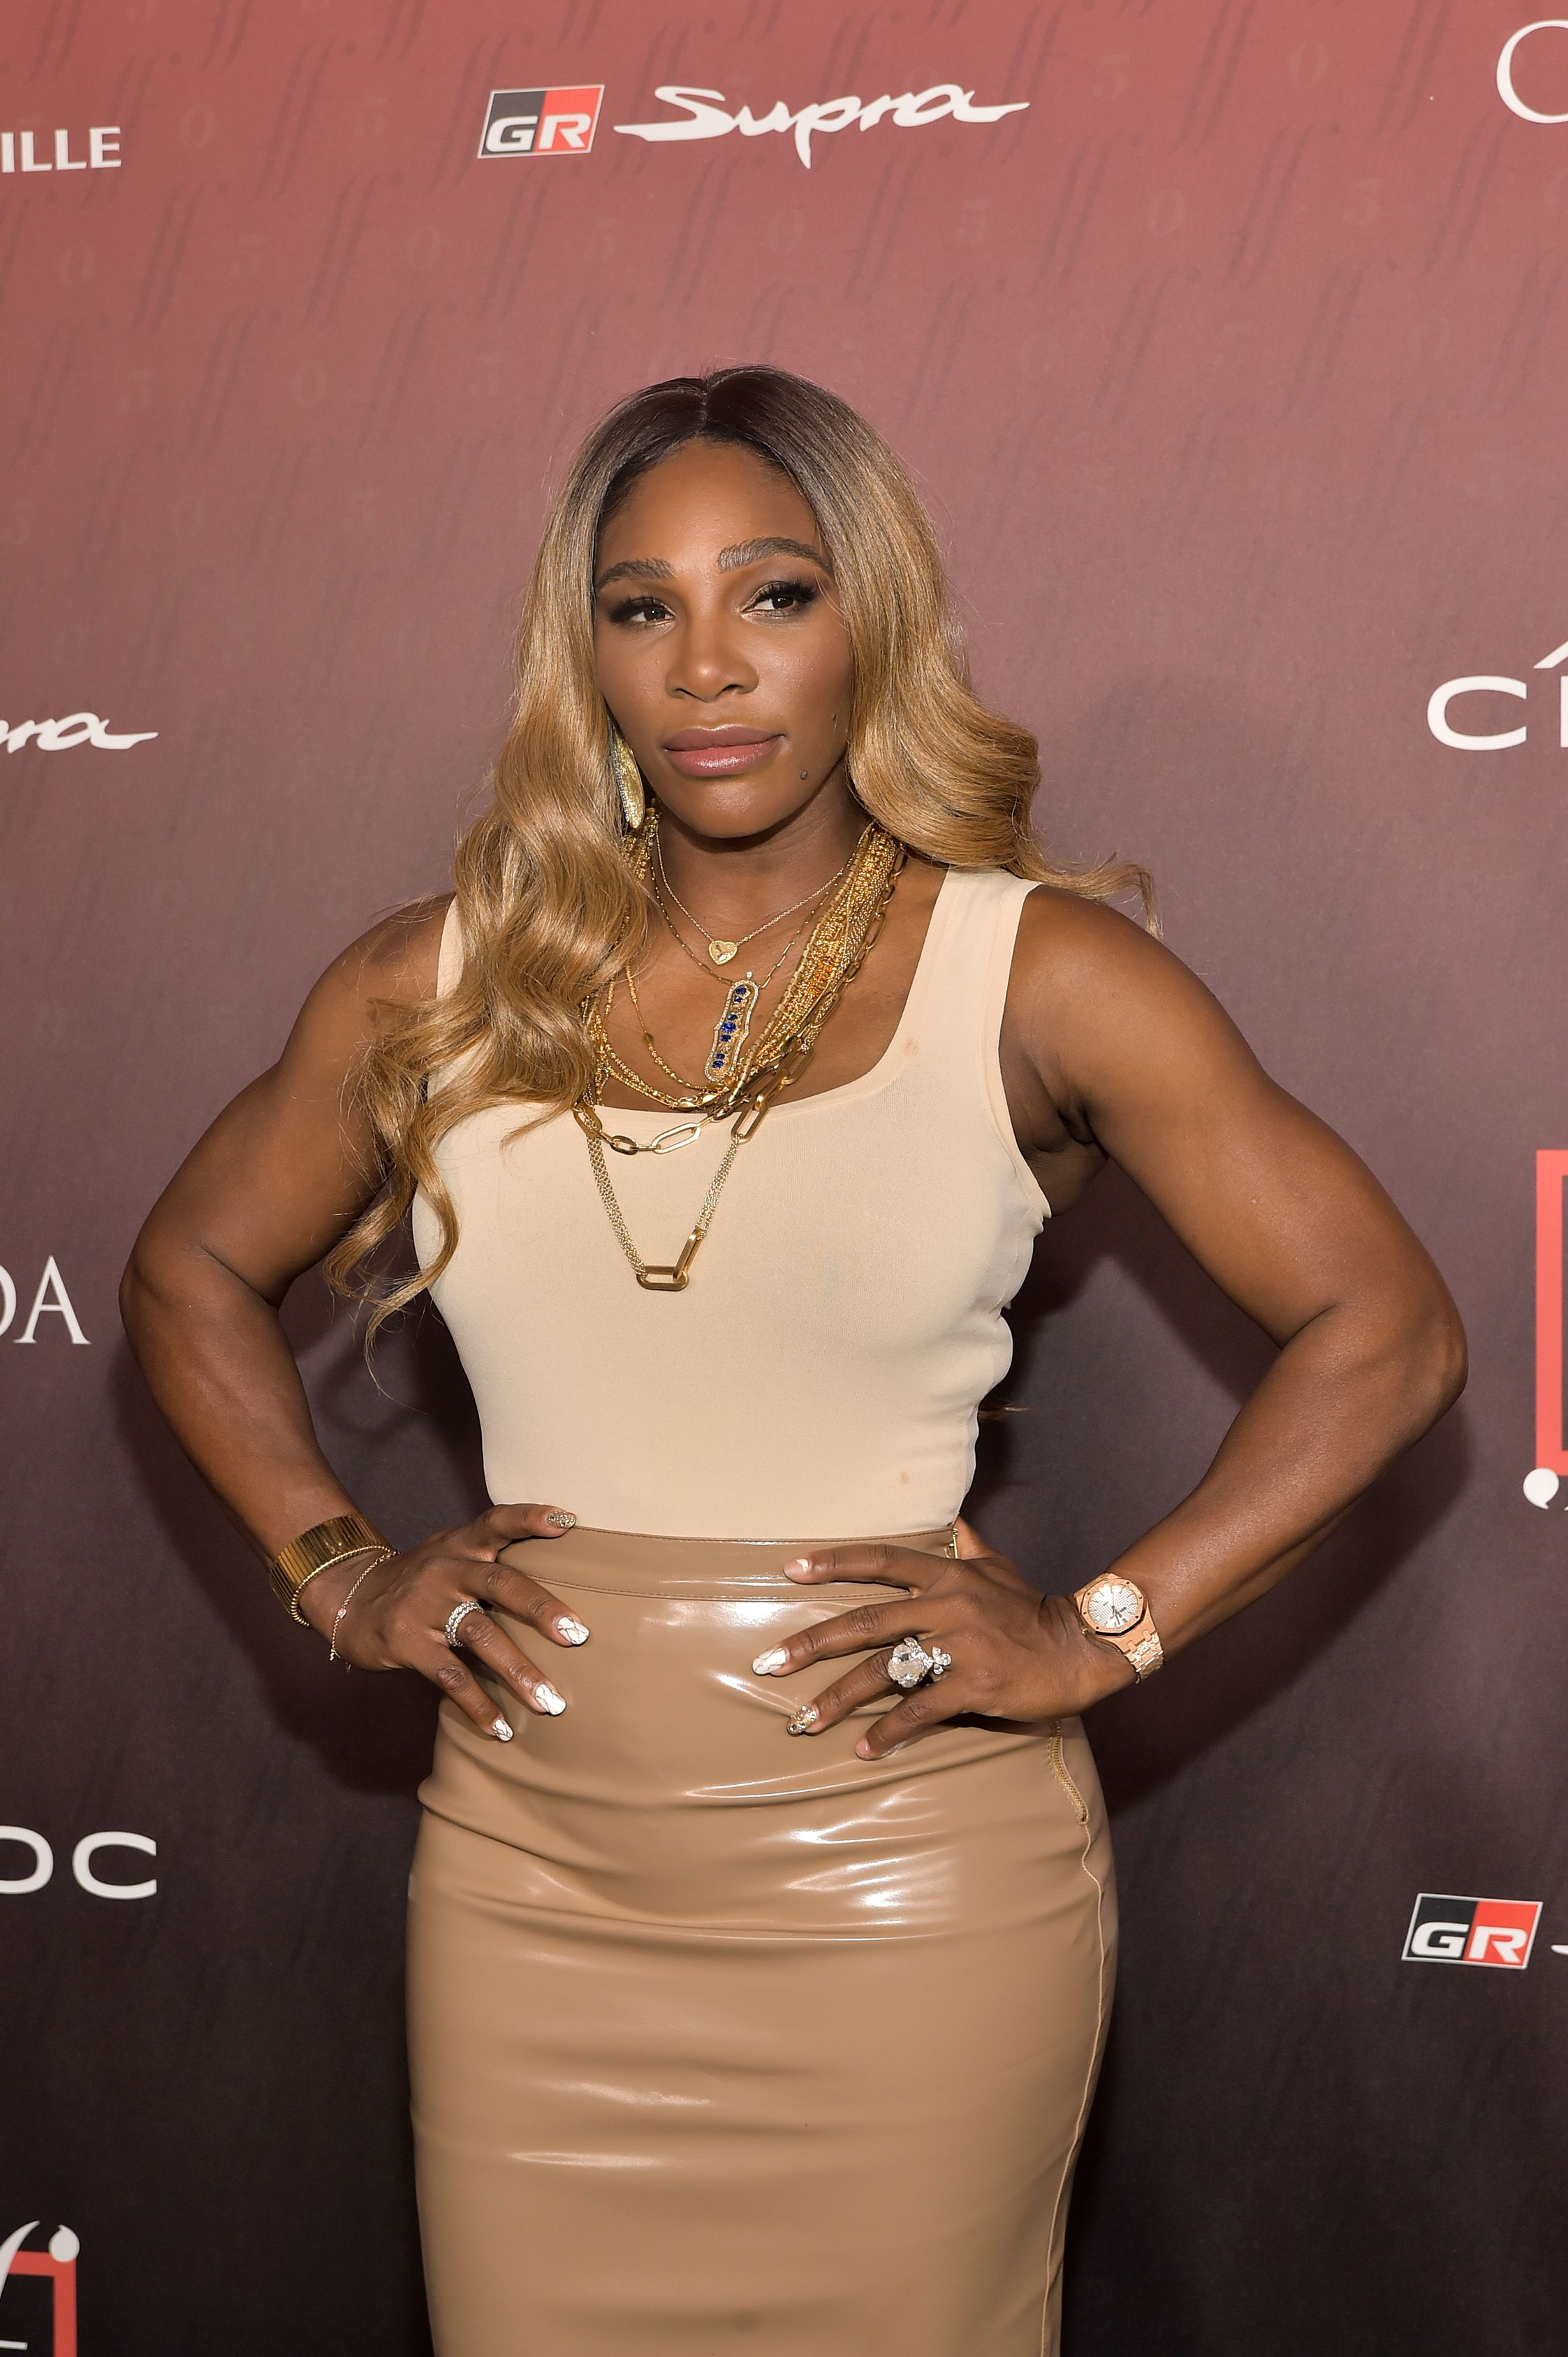 Serena Williams Debuts a New Ombre Hair Color at the 'Sports Illustrated' Party